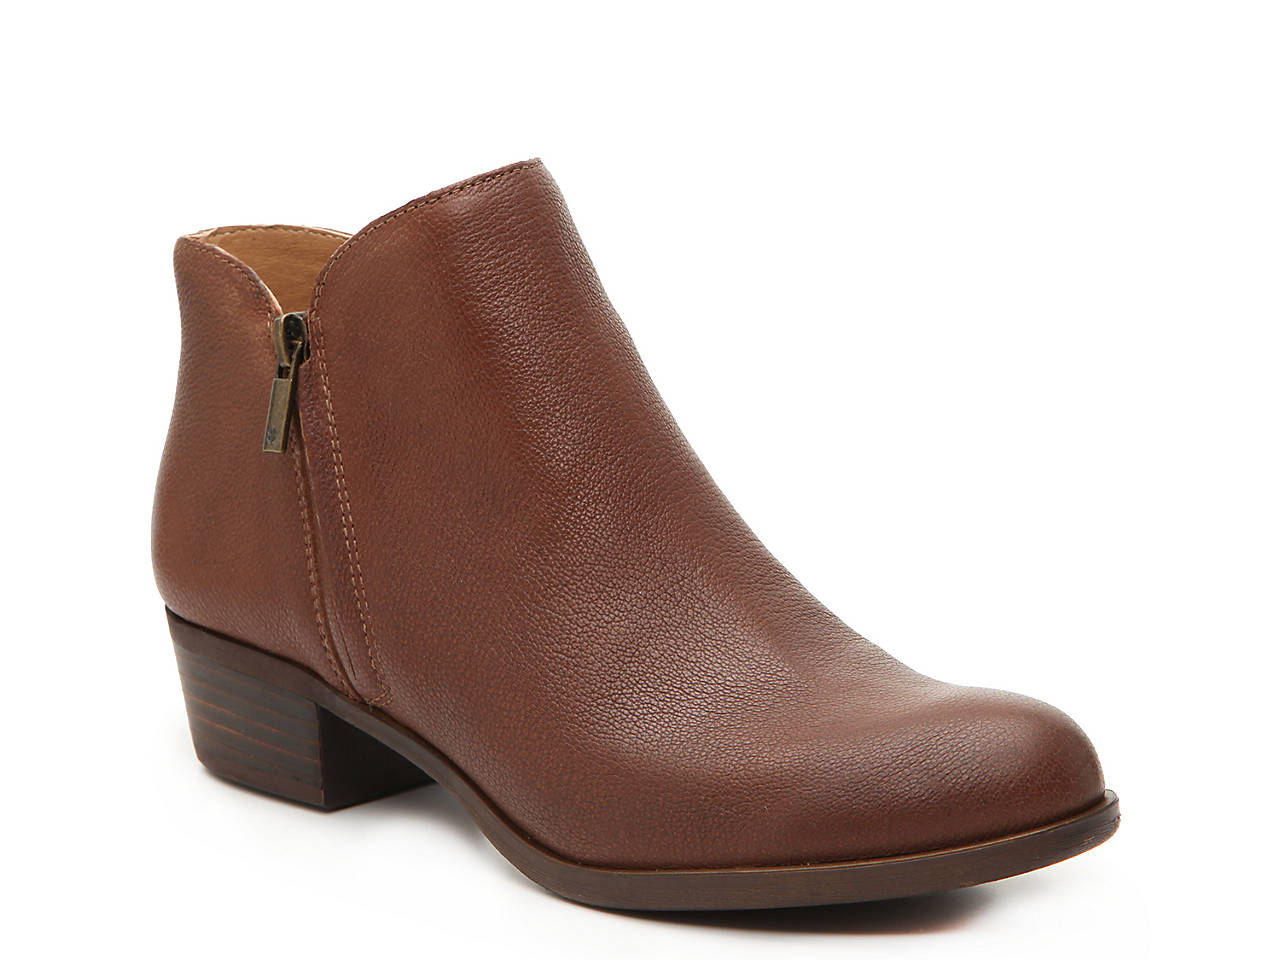 329b1295b9e6 Lucky Brand Barough Bootie Women s Shoes